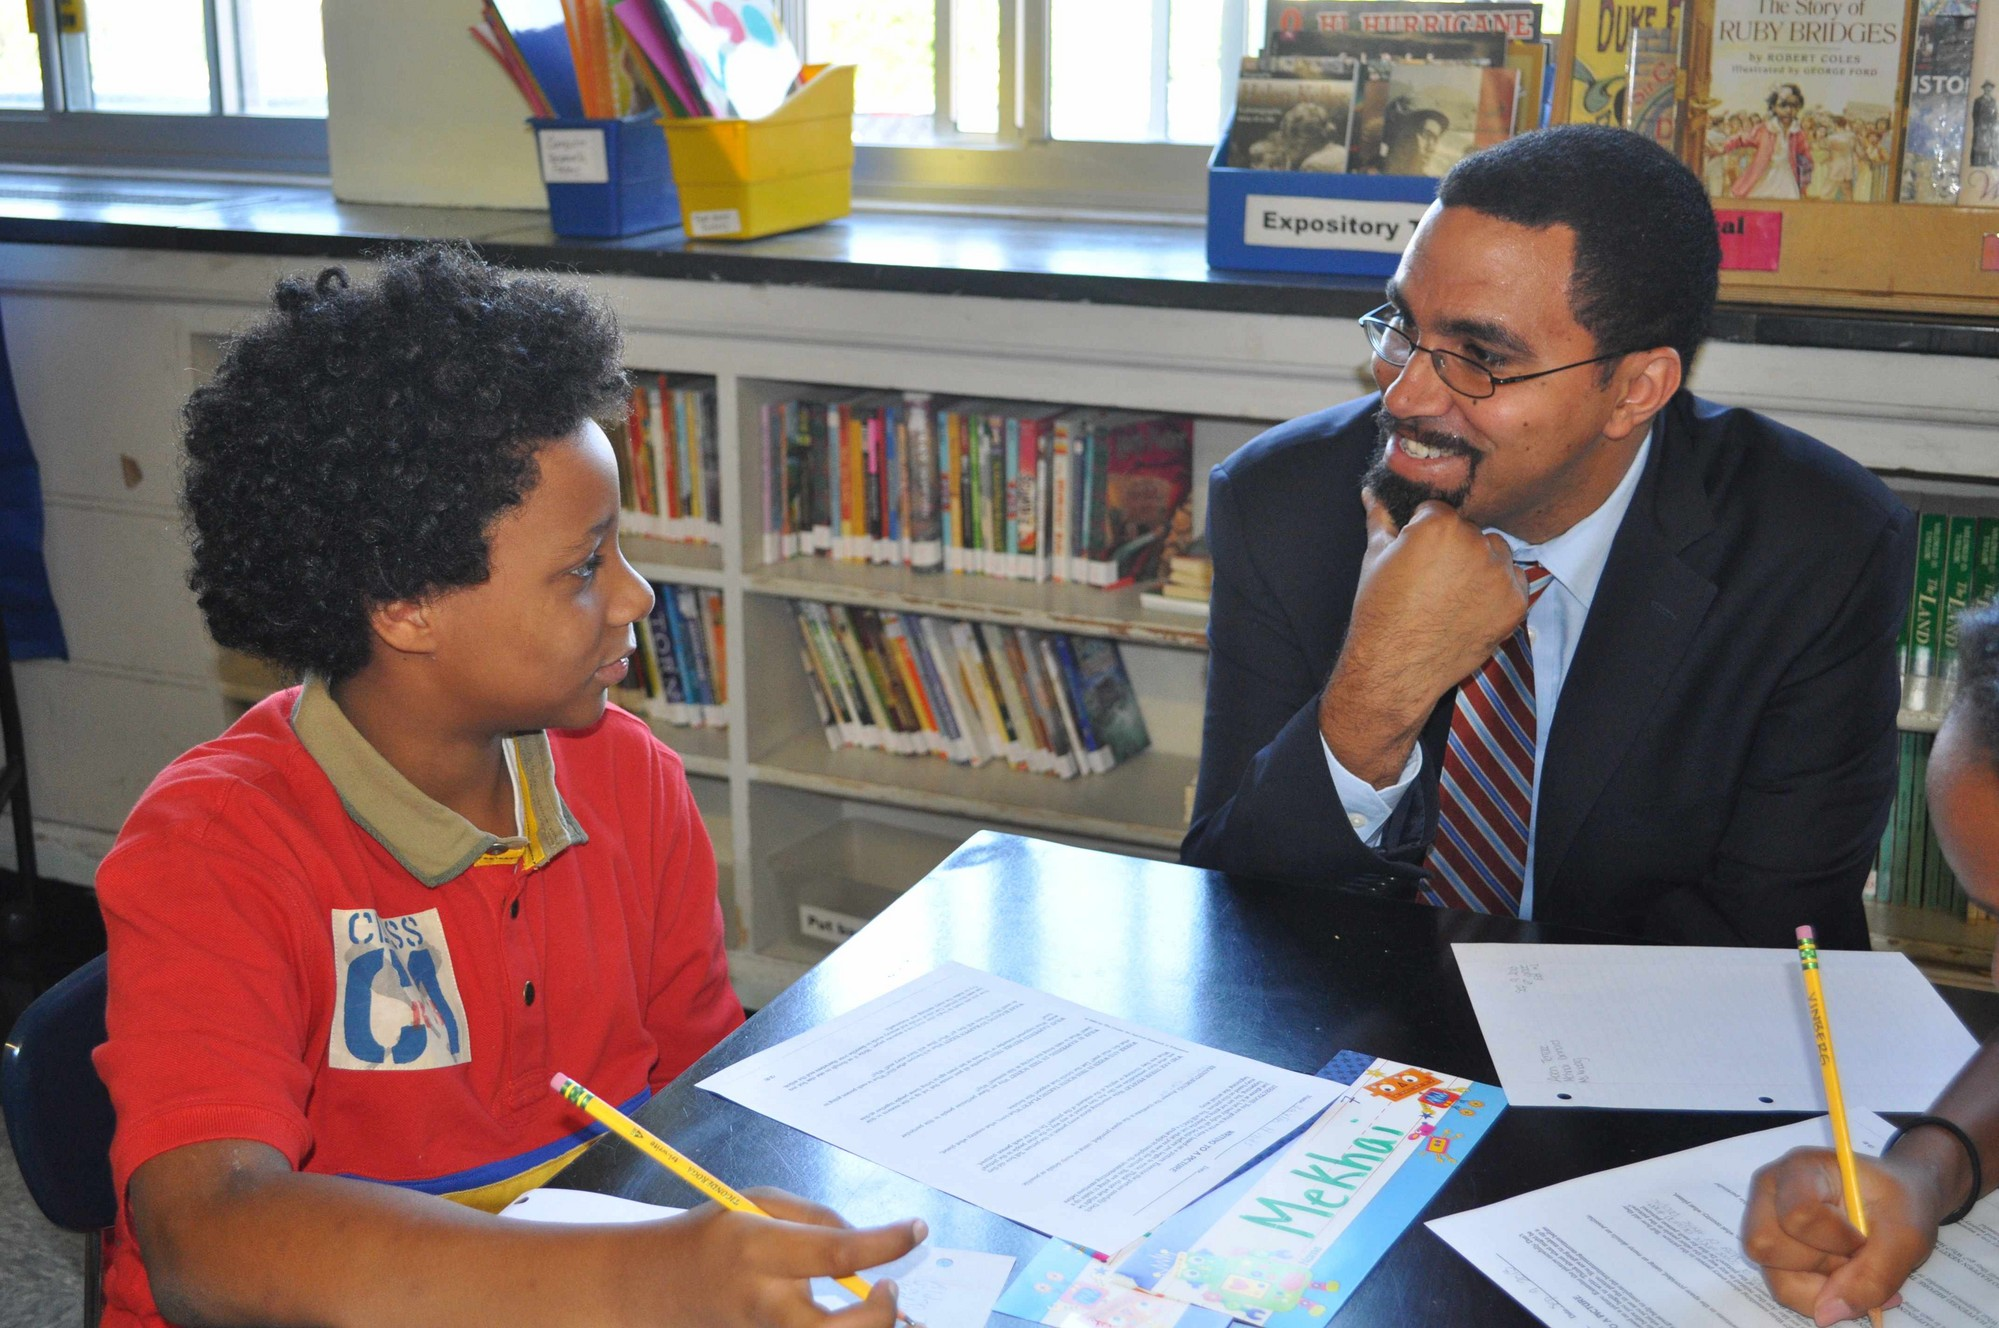 Alden Terrace School sixth-grader Jaylin Hinds happily spoke to State Commissioner of Education Dr. John B. King Jr. on Sept. 9.